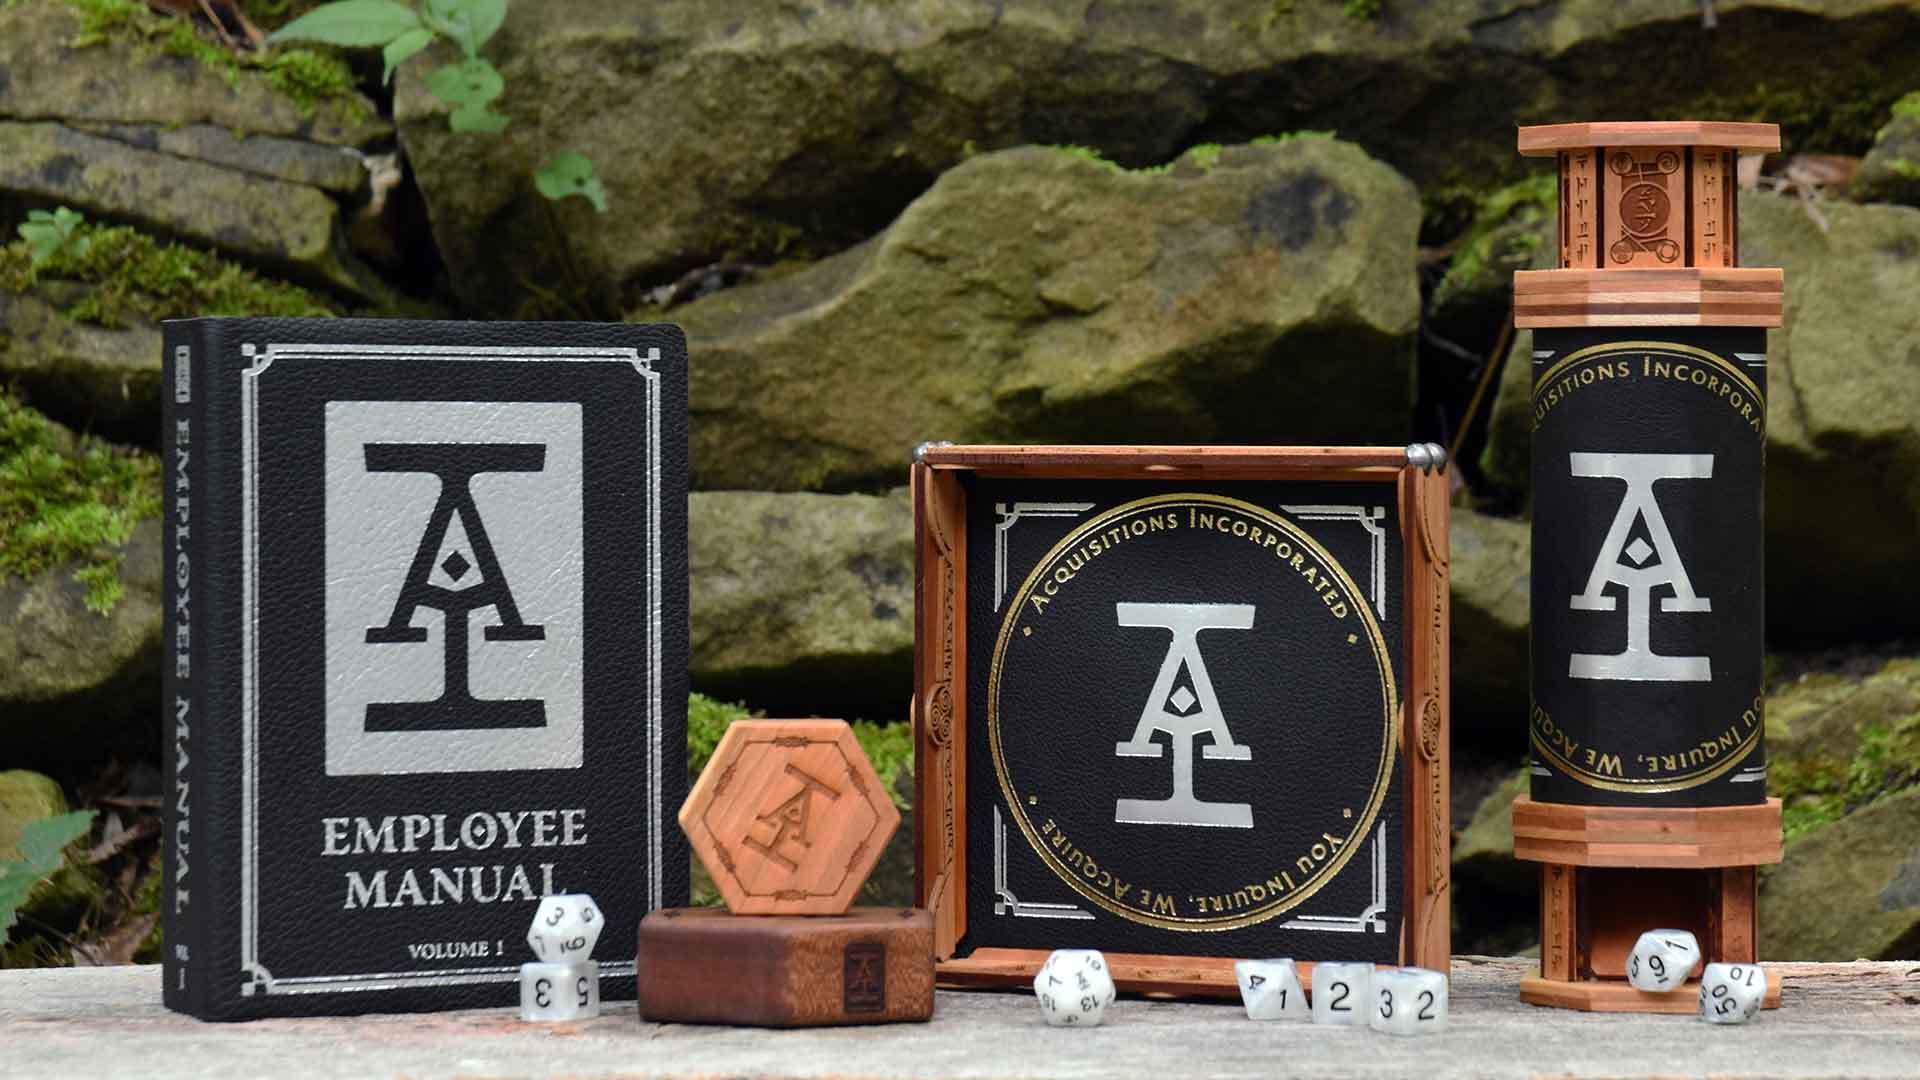 Acquisitions Incorporated Employee Store